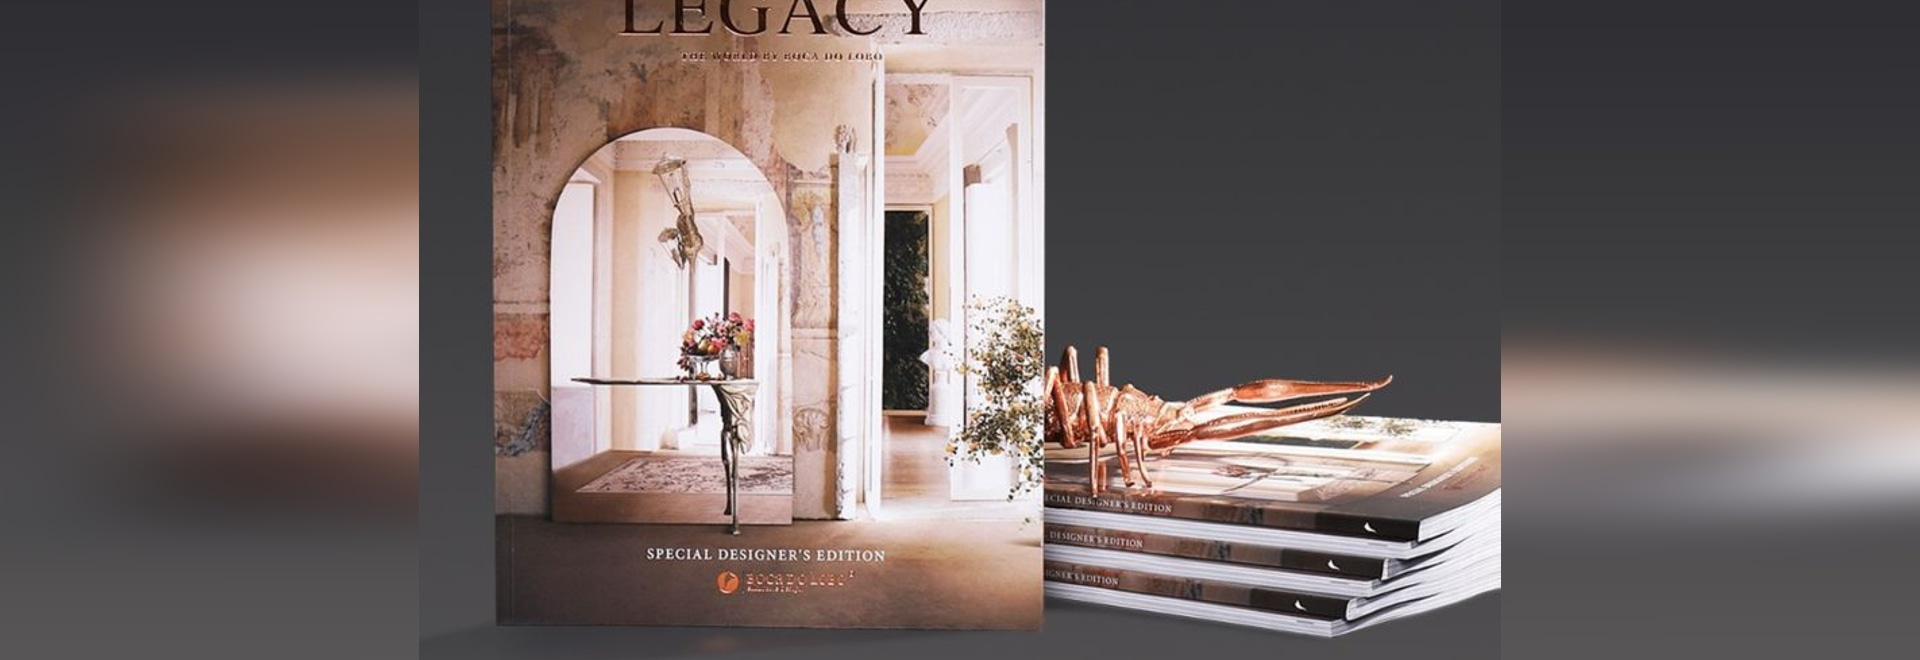 Boca do Lobo's neues Legacy-Magazin